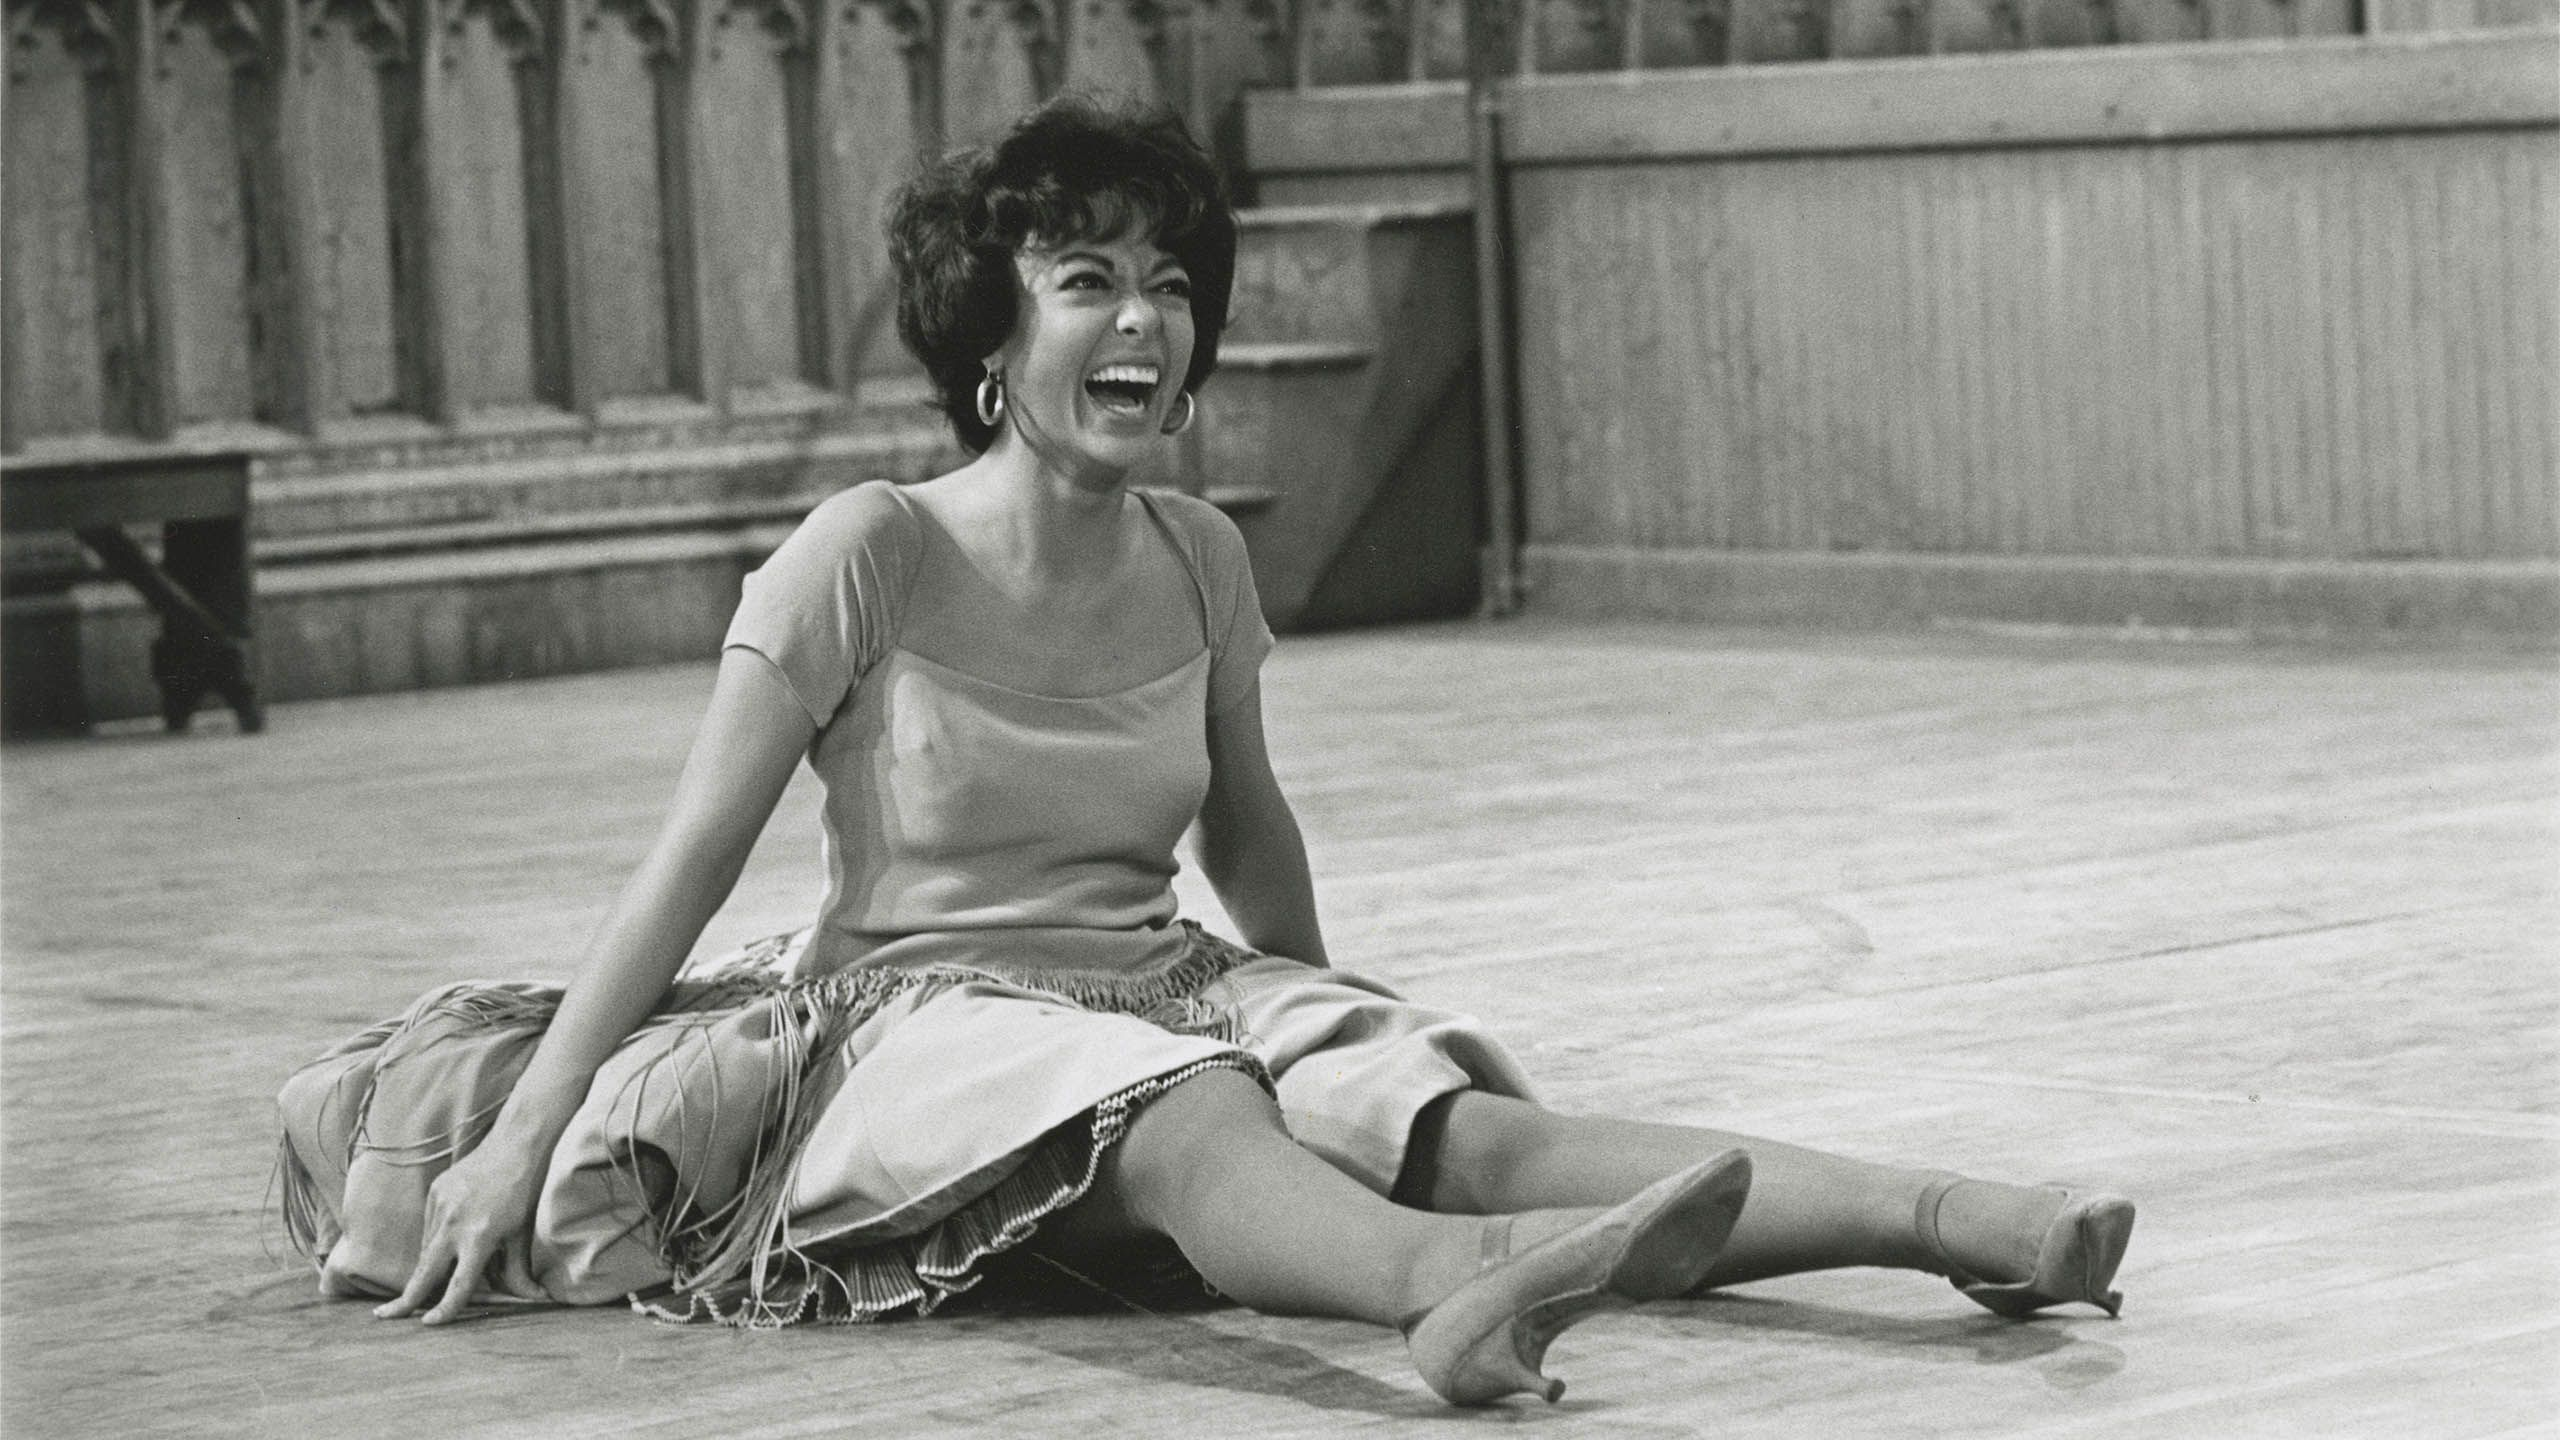 """(Photo courtesy of MGM Media Licensing / Sundance Institute) Rita Moreno, seen here on the set of MGM's 1961 classic """"West Side Story,"""" is the subject of """"Rita Moreno: Just a Girl Who Decided to Go For It,"""" by Mariem Pérez Riera. Sundance Institute will present a free screening of the film on June 24, 2021, at Park City's Utah Olympic Park."""